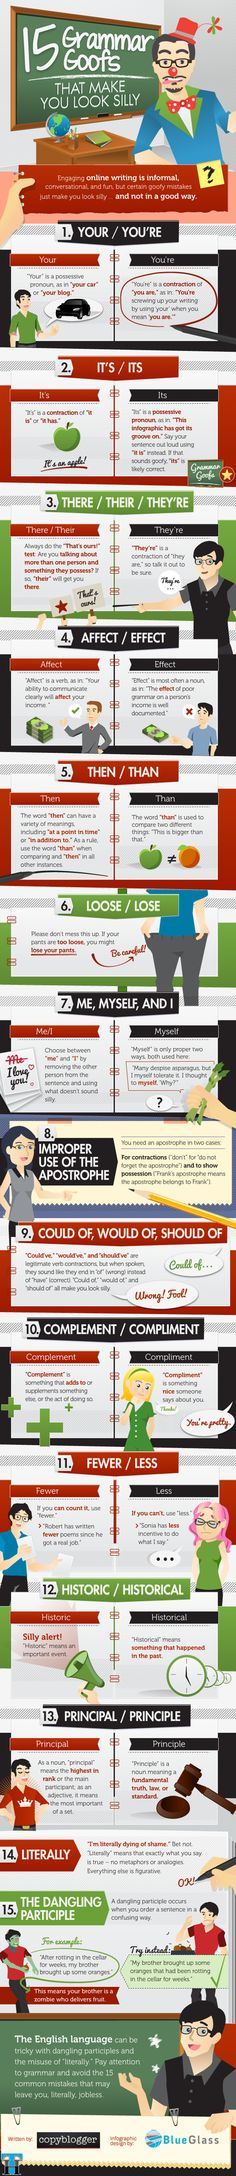 Correct these common grammatical mistakes : Weekend fun [Infographics]